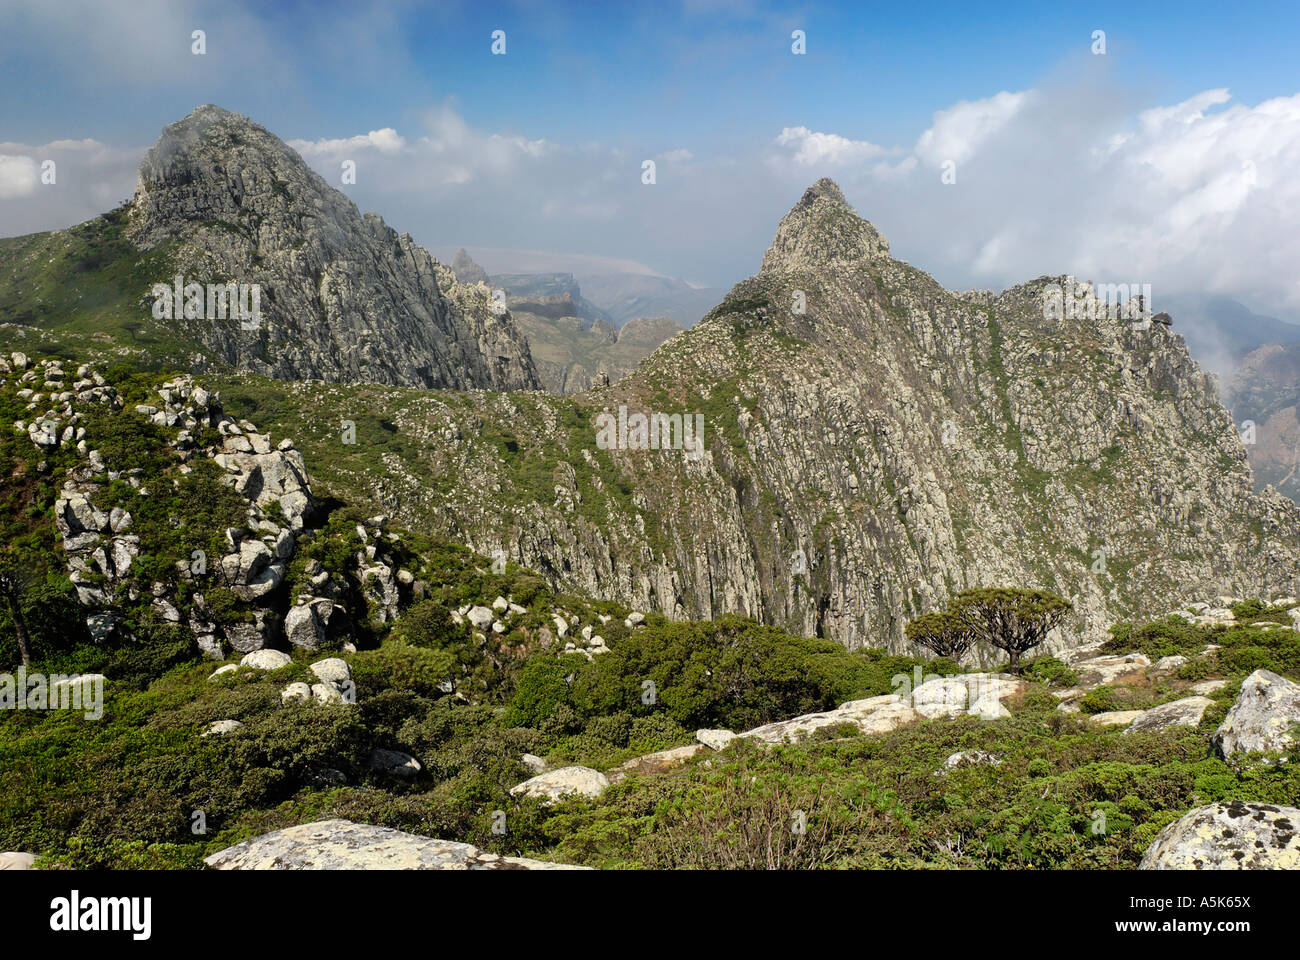 Monsoon clouds over the Hagghier, Haggier Mountains, Socotra island, UNESCO-World Heritage Site, Yemen Stock Photo